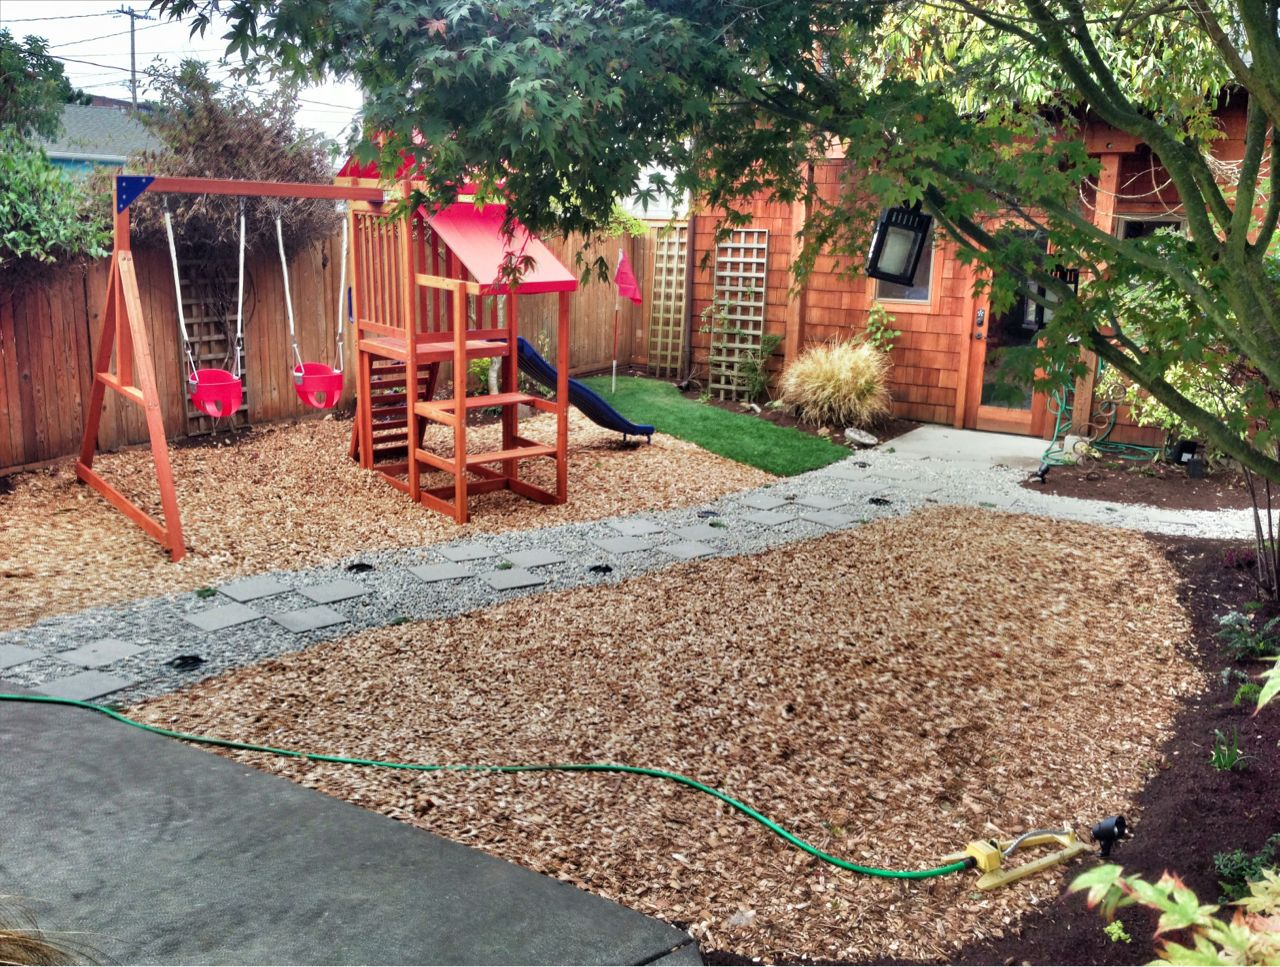 dreamscapeslandscaping. Backyard Play AreasKids Play AreaWood Chips  LandscapingLandscaping ... - Image Result For Landscaping With Wood Chips Summertime: Garden